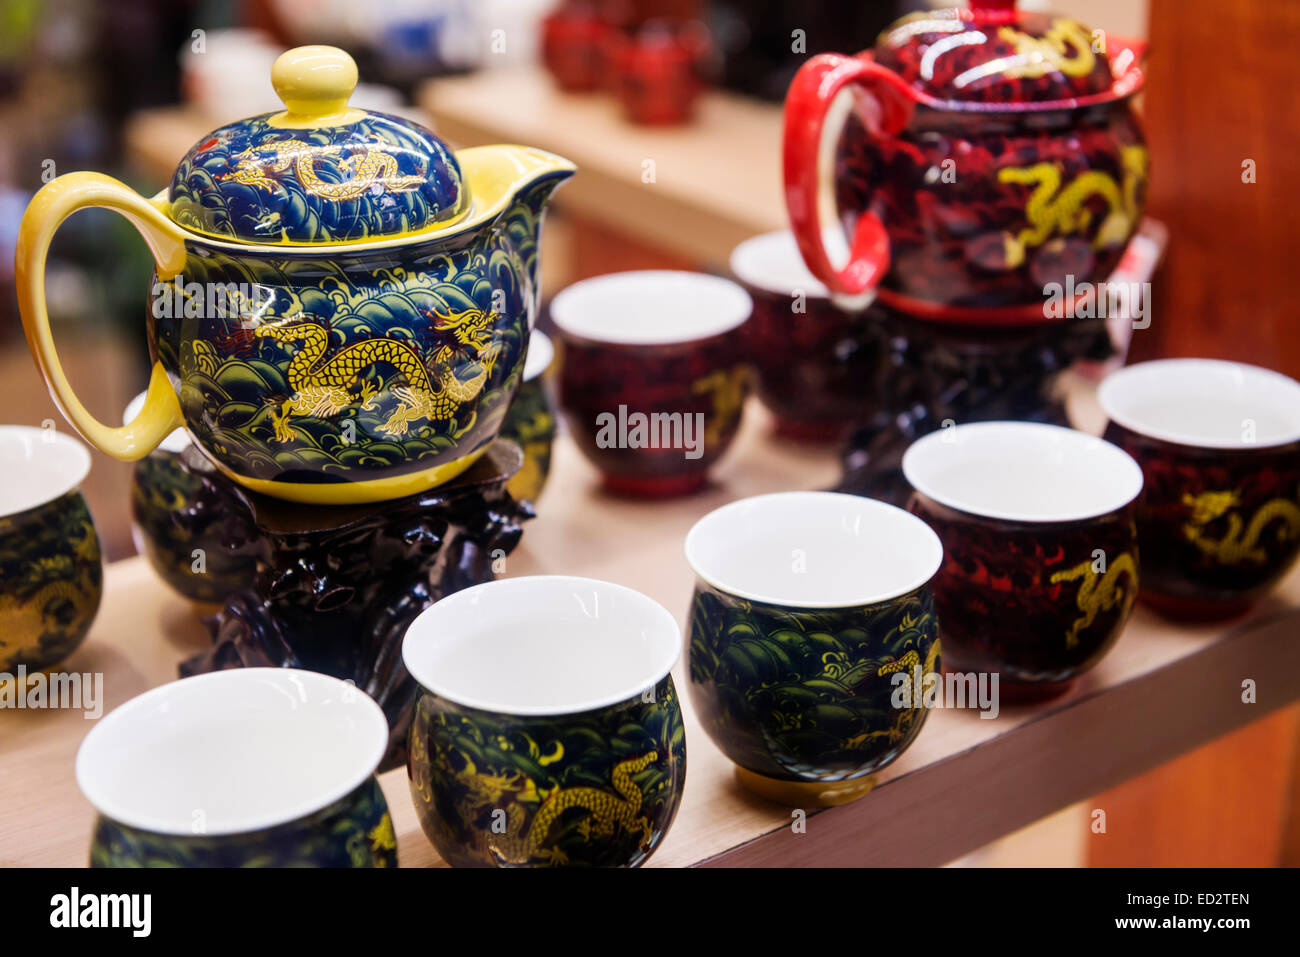 Chinese tea sets, painted decorative teapots and cups on display at a store in Shanghai, China - Stock Image